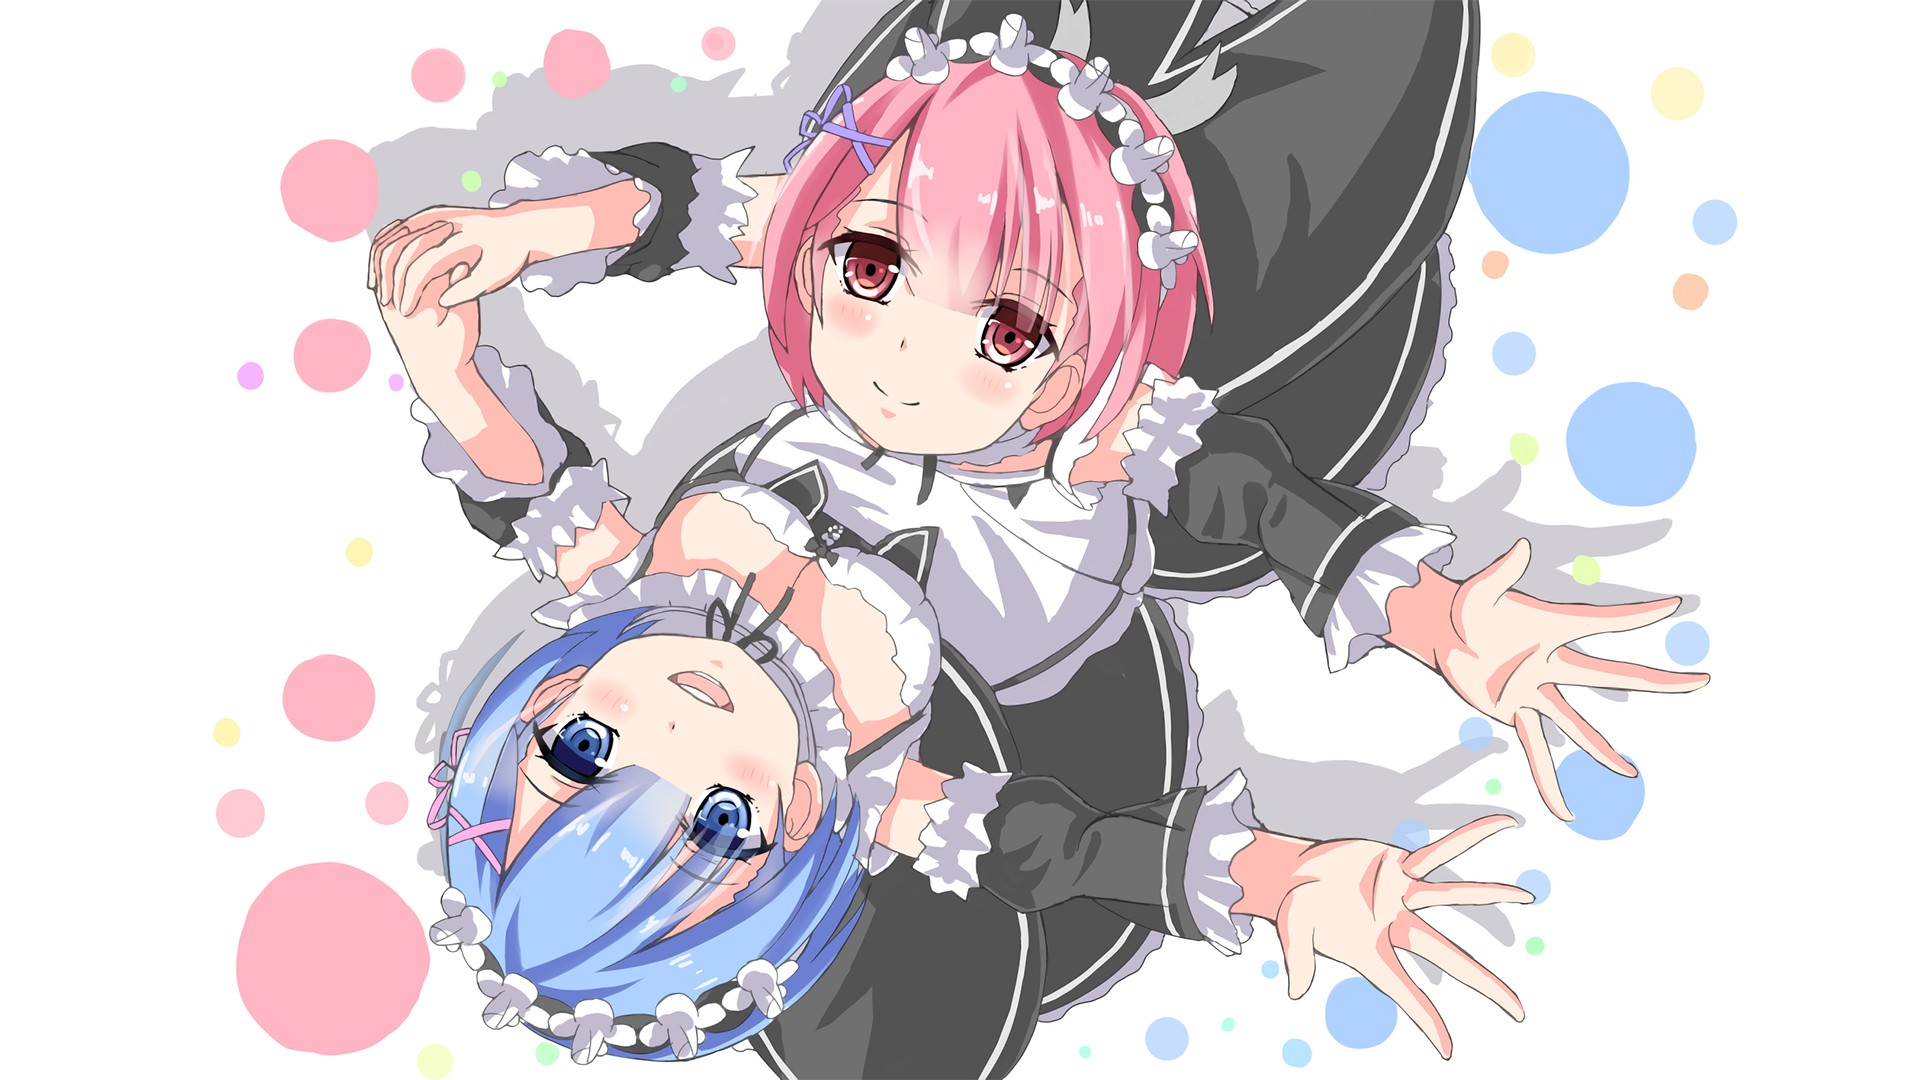 Rem Re Zero Wallpaper Download Free Cool Hd Backgrounds For